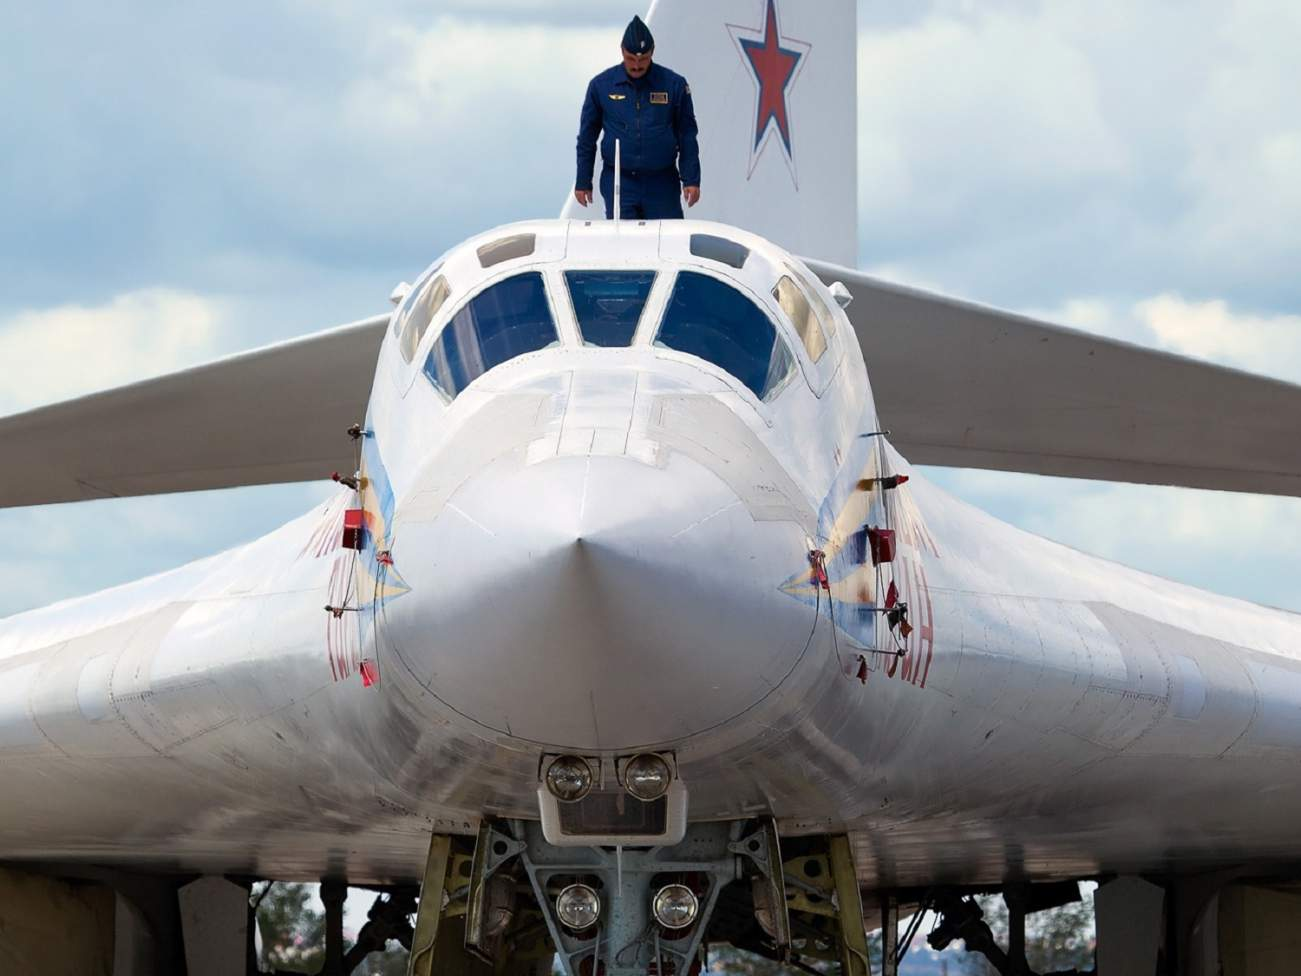 Russia's Plan to Invade and Crush NATO in a War Would Have Killed Millions